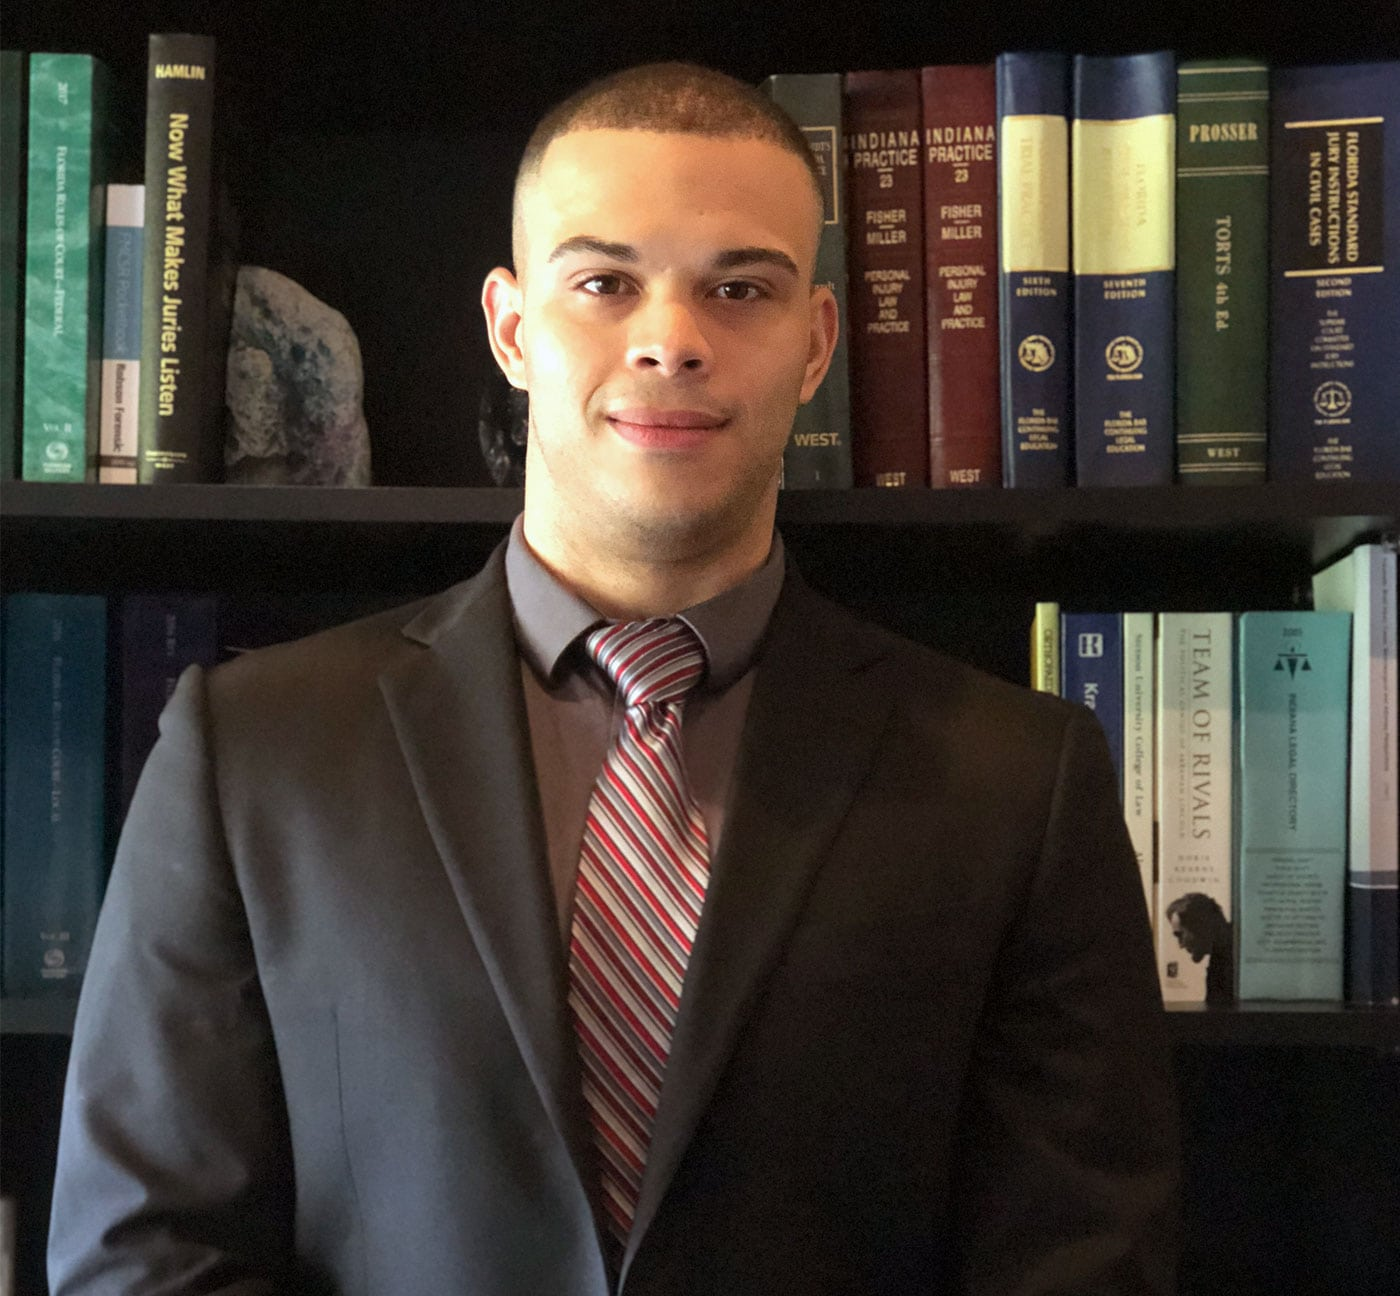 Nollys Solarte - Attorney at Law - Personal Injury Attorney - Tampa Personal Injury Attorney